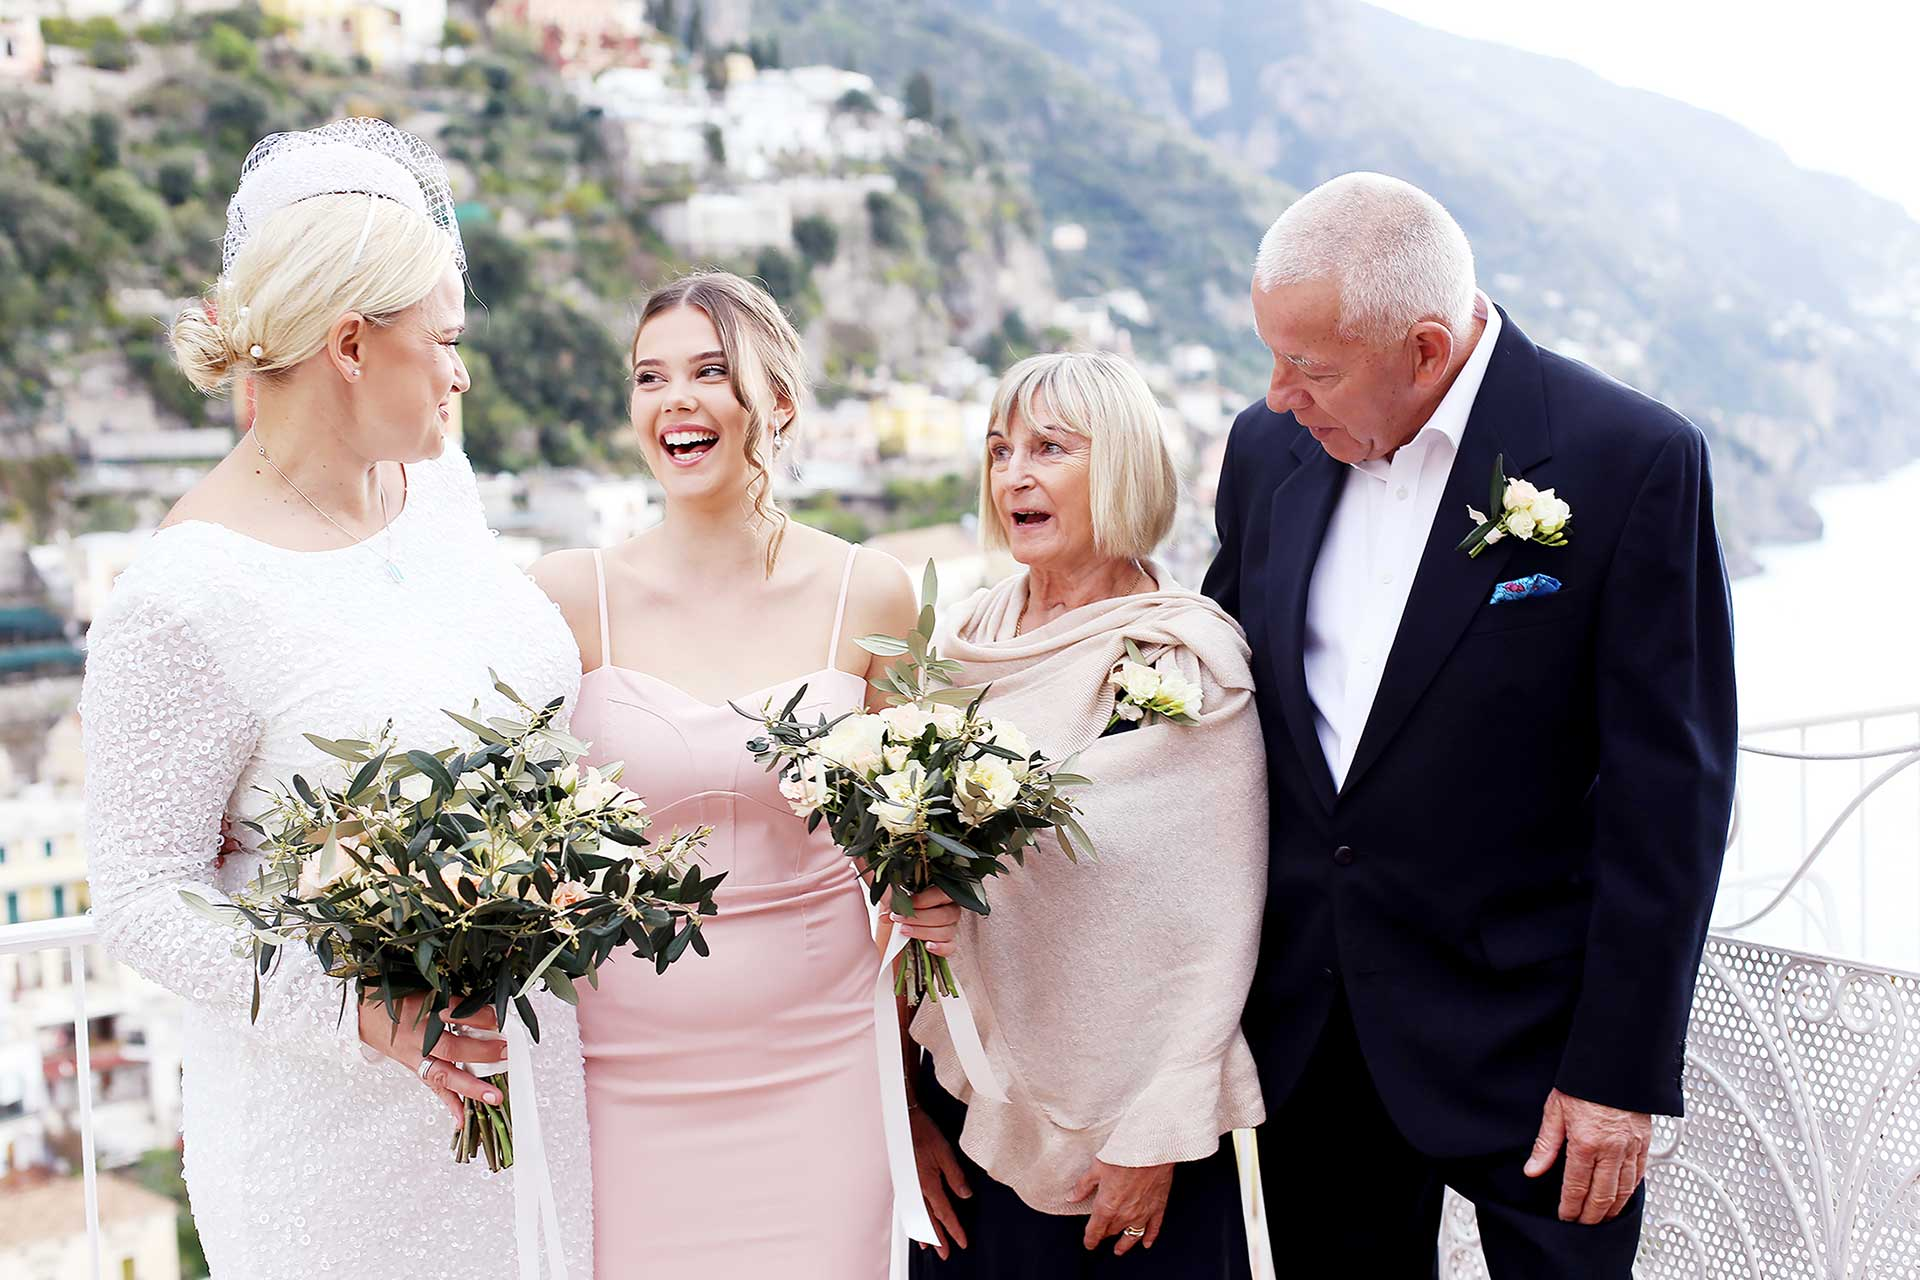 Destination Catholic Church San Gennaro Wedding Praiano Amalfi Coast Italy Reception Hotel Restaurant Praiano Wedding Location Claudia Francese Photography Sisters